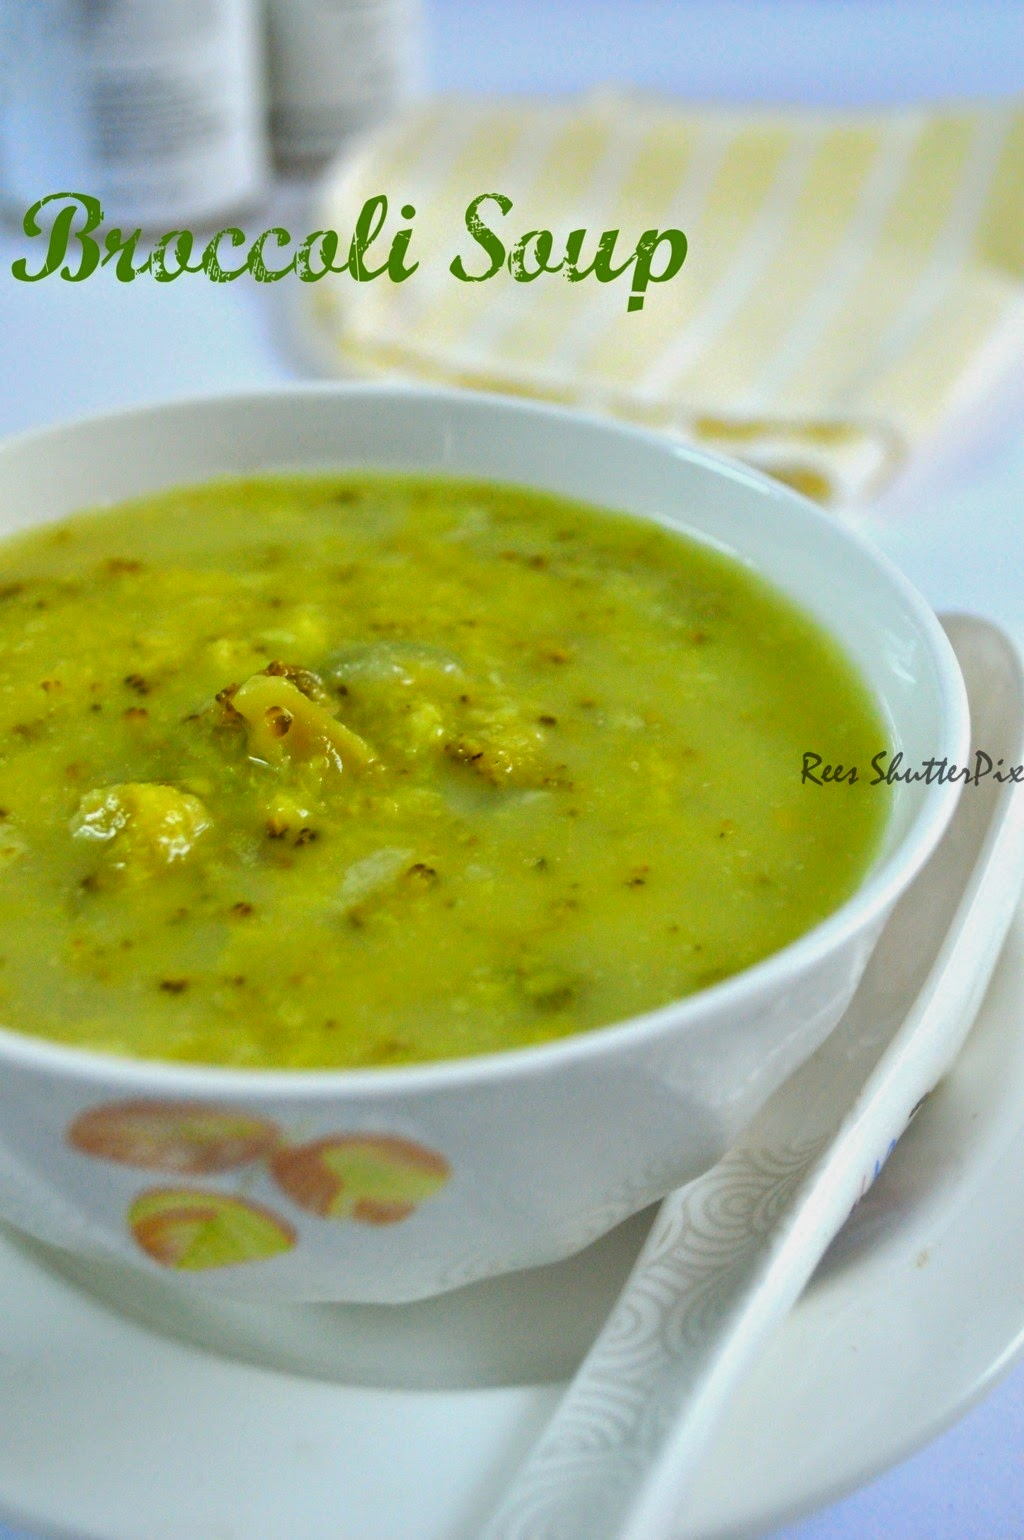 broccoli soup recipes, easy broccoli dishes, healthy soups recipes, broccoli yummy dish